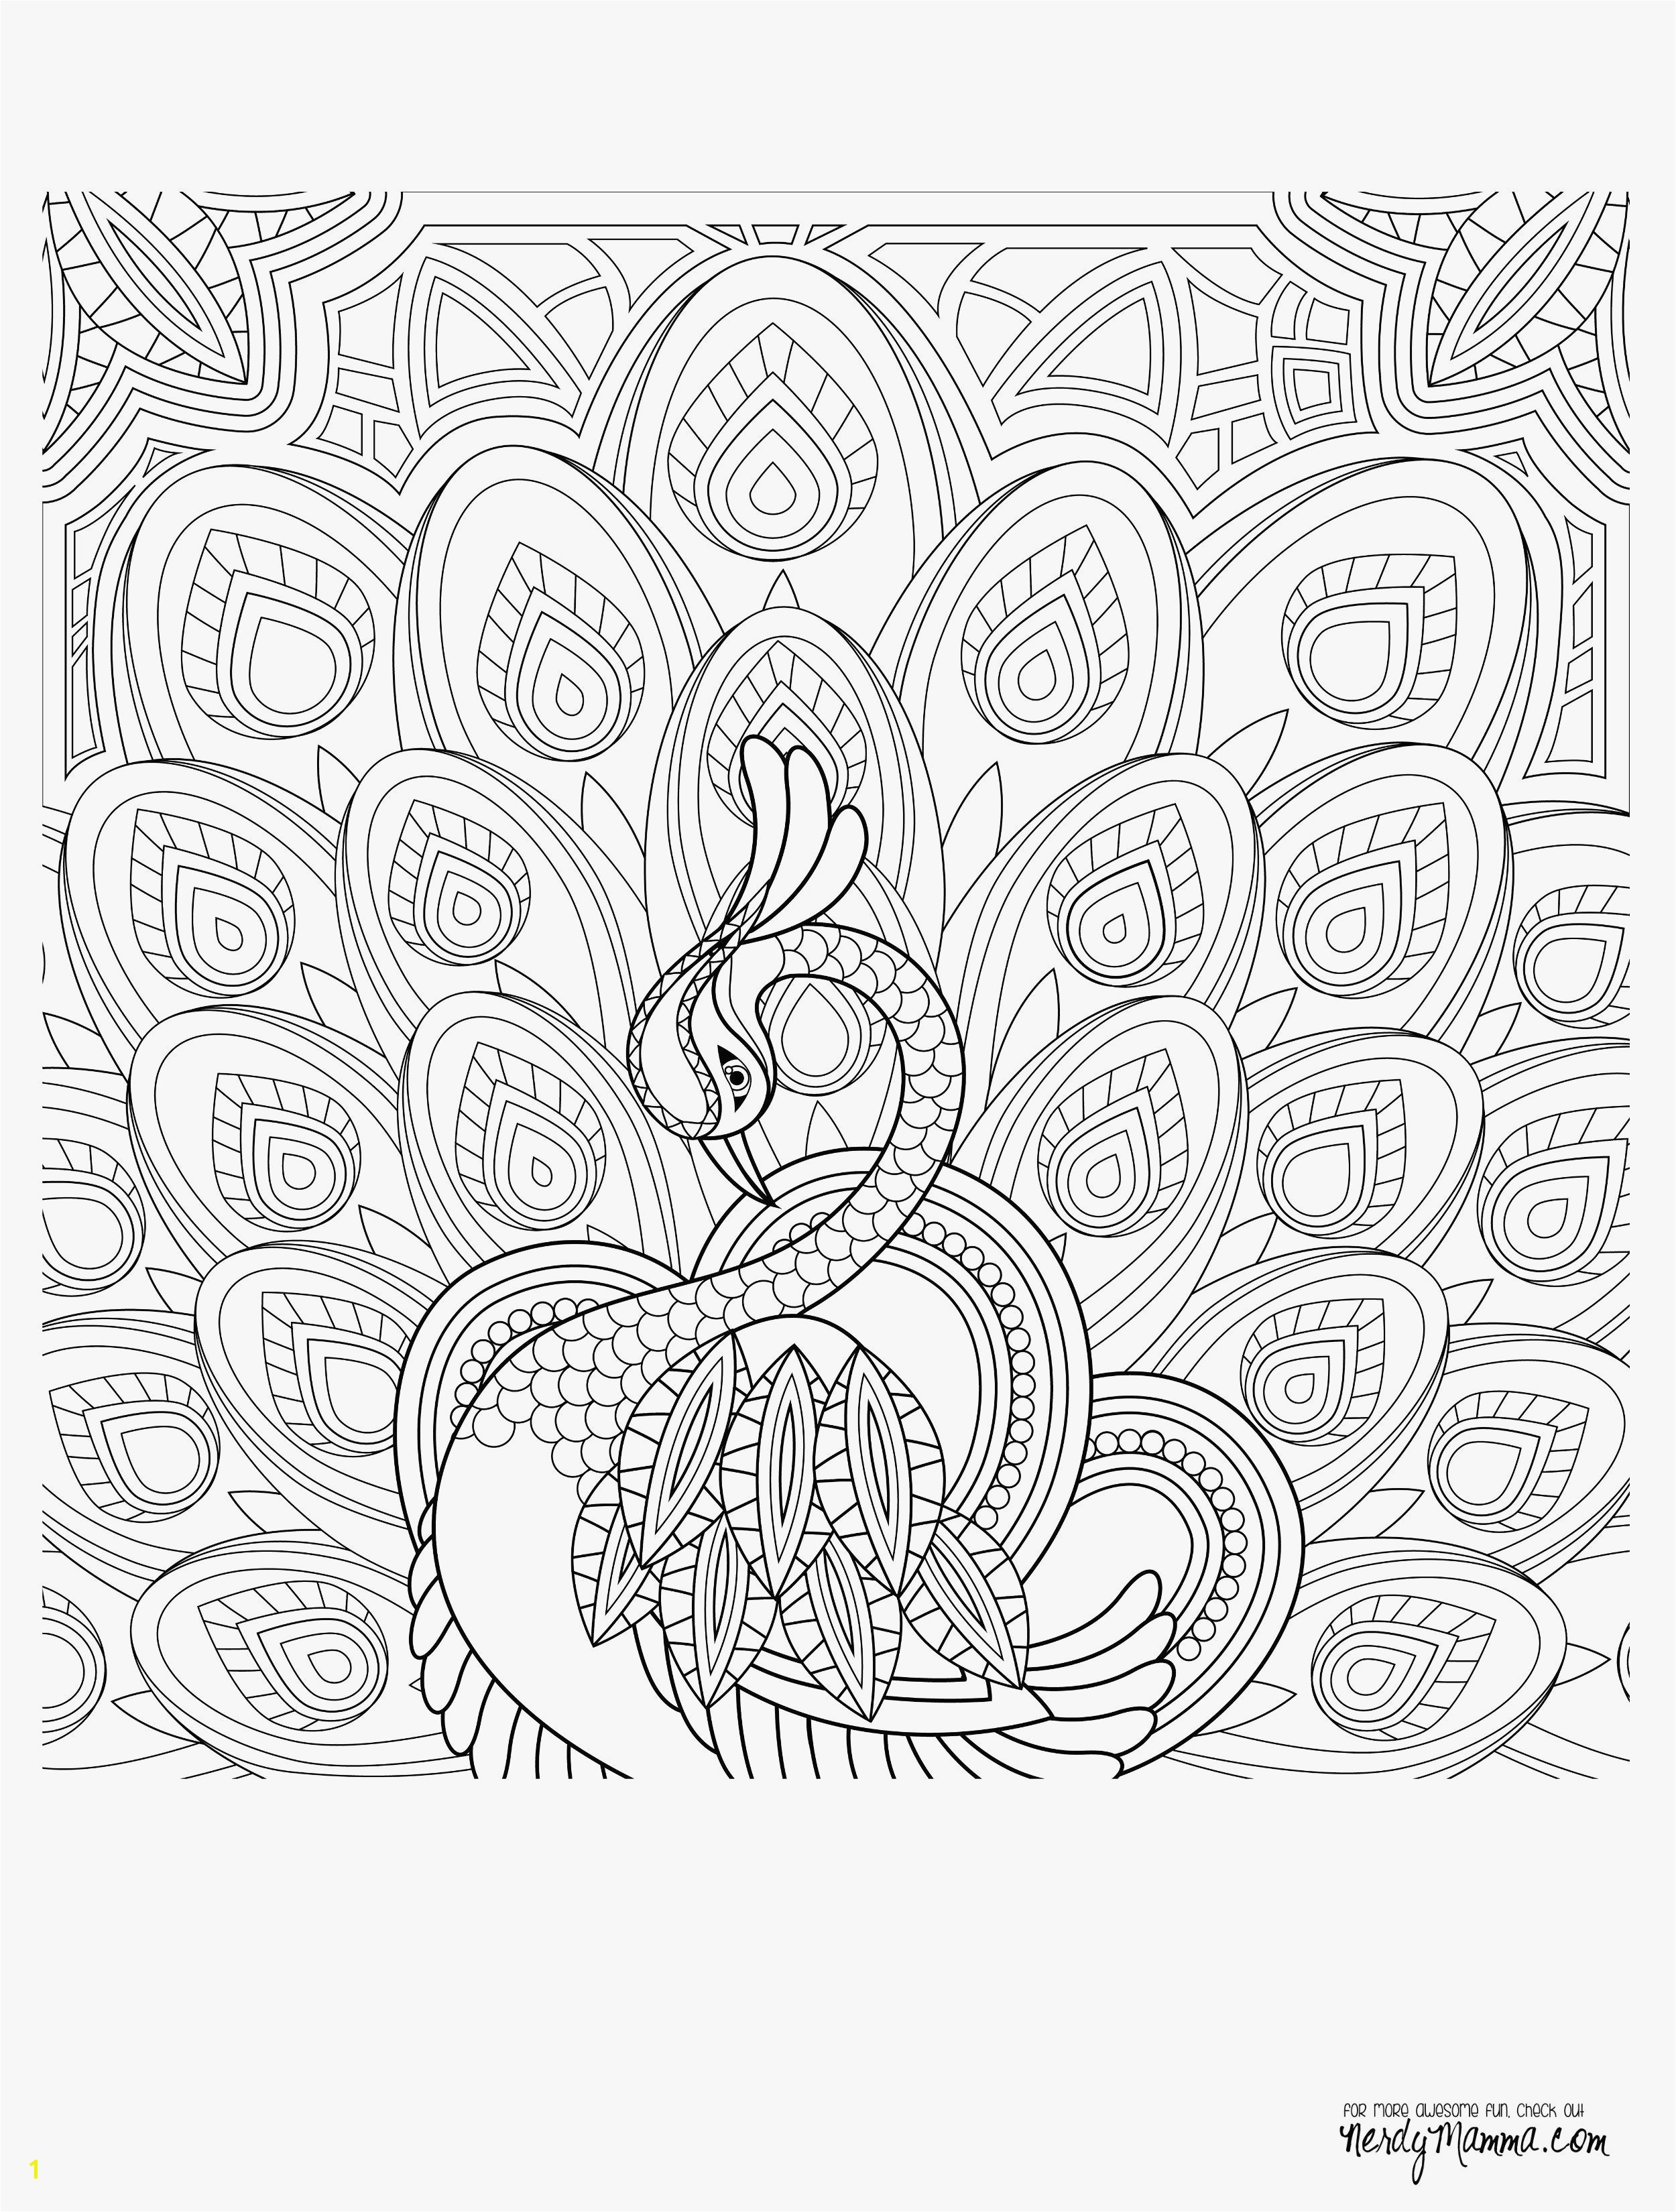 Human Heart Coloring Pages Printable Printable Heart Coloring Pages